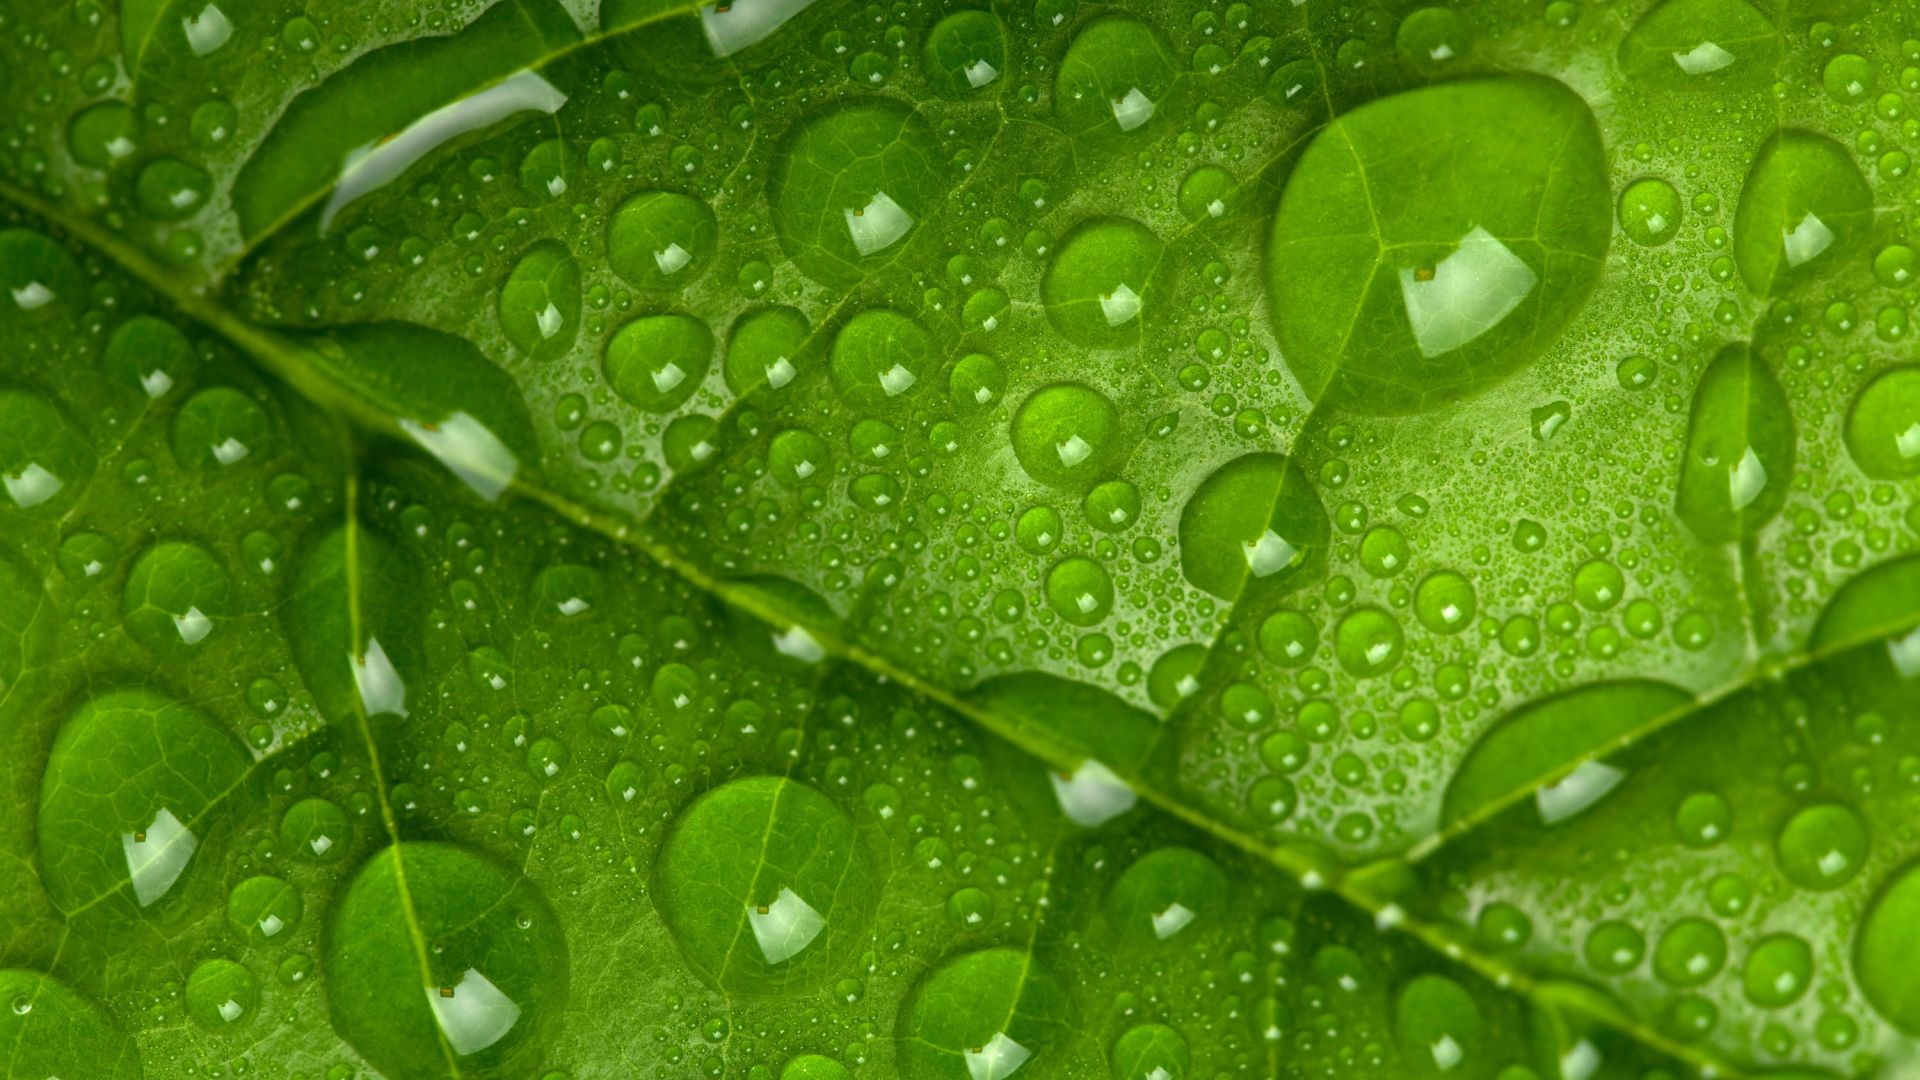 droplets on leaves 4k - photo #26